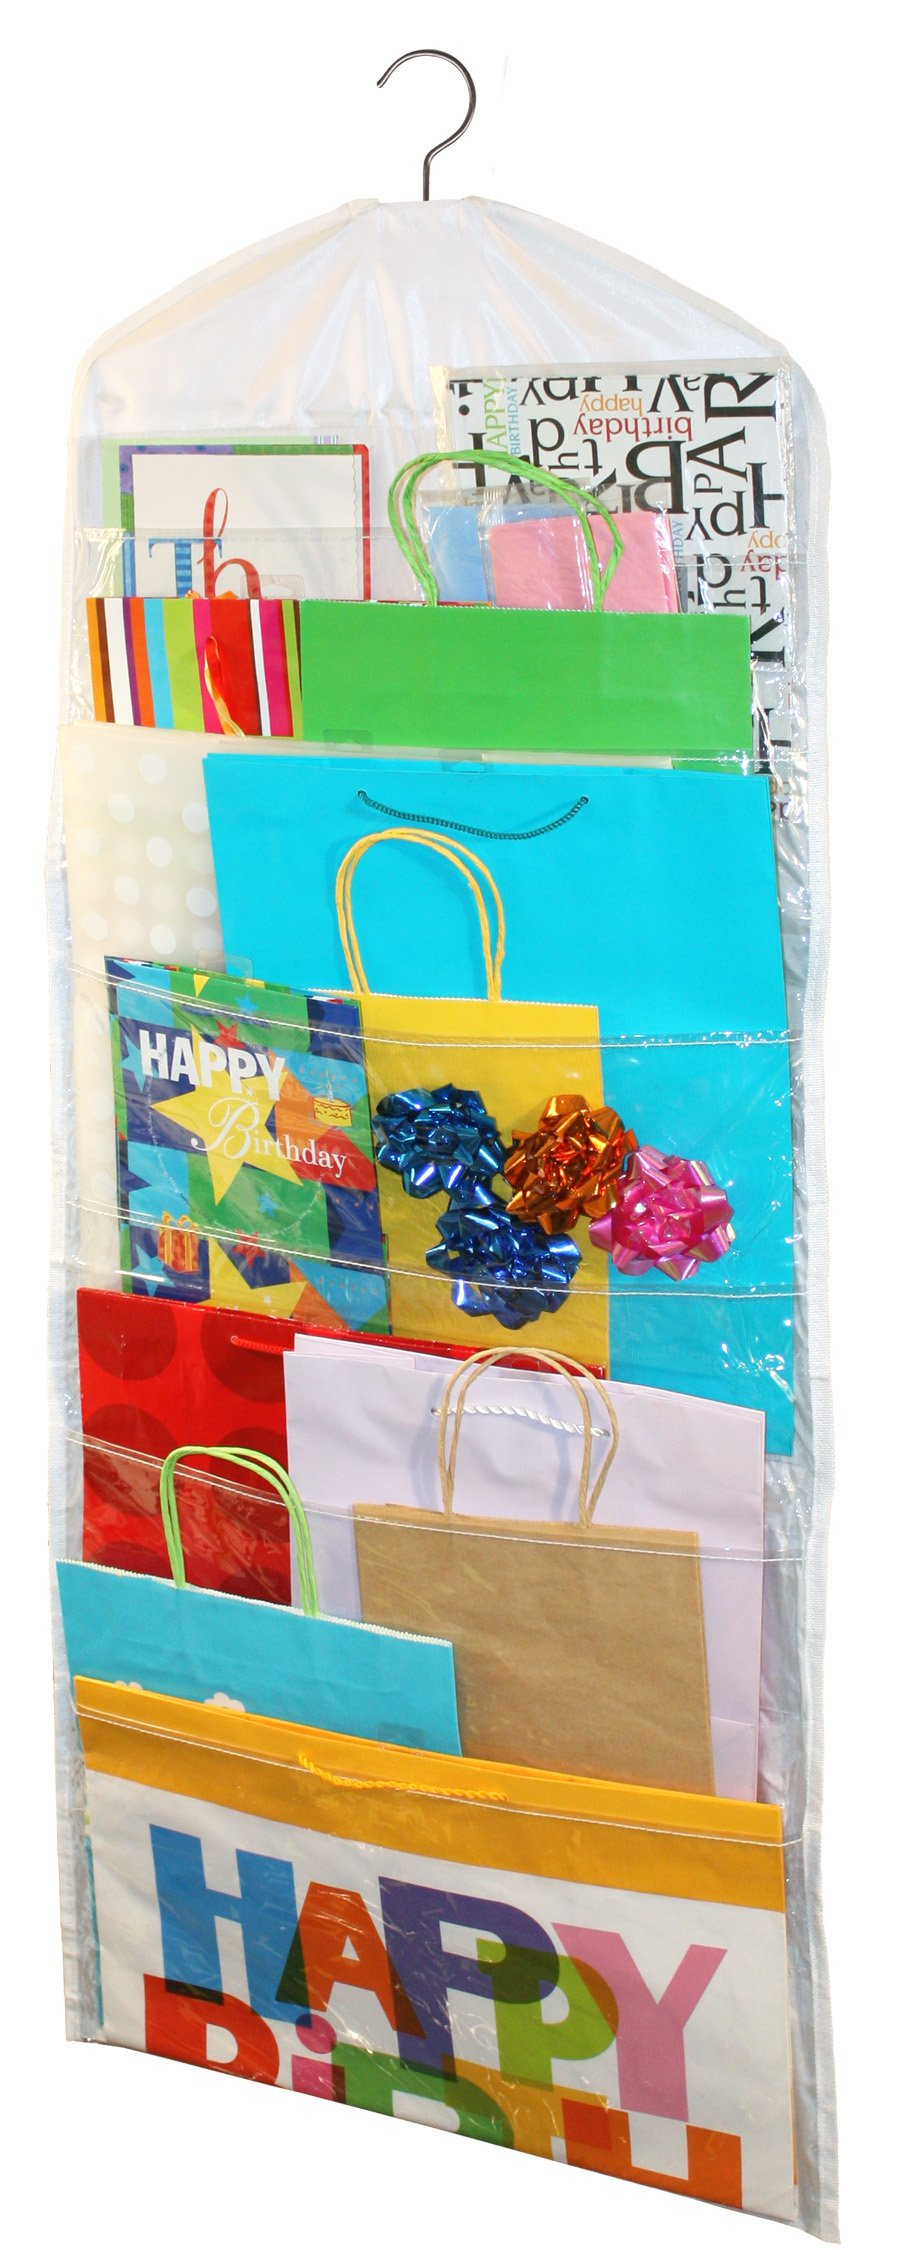 Gift Bag Organizer - Storage for Gift Bags, Bows, Ribbon and More - Organize Your Closet with this Hanging Bag & Box to Have Organization with Clear Pockets by Jokari by Jokari